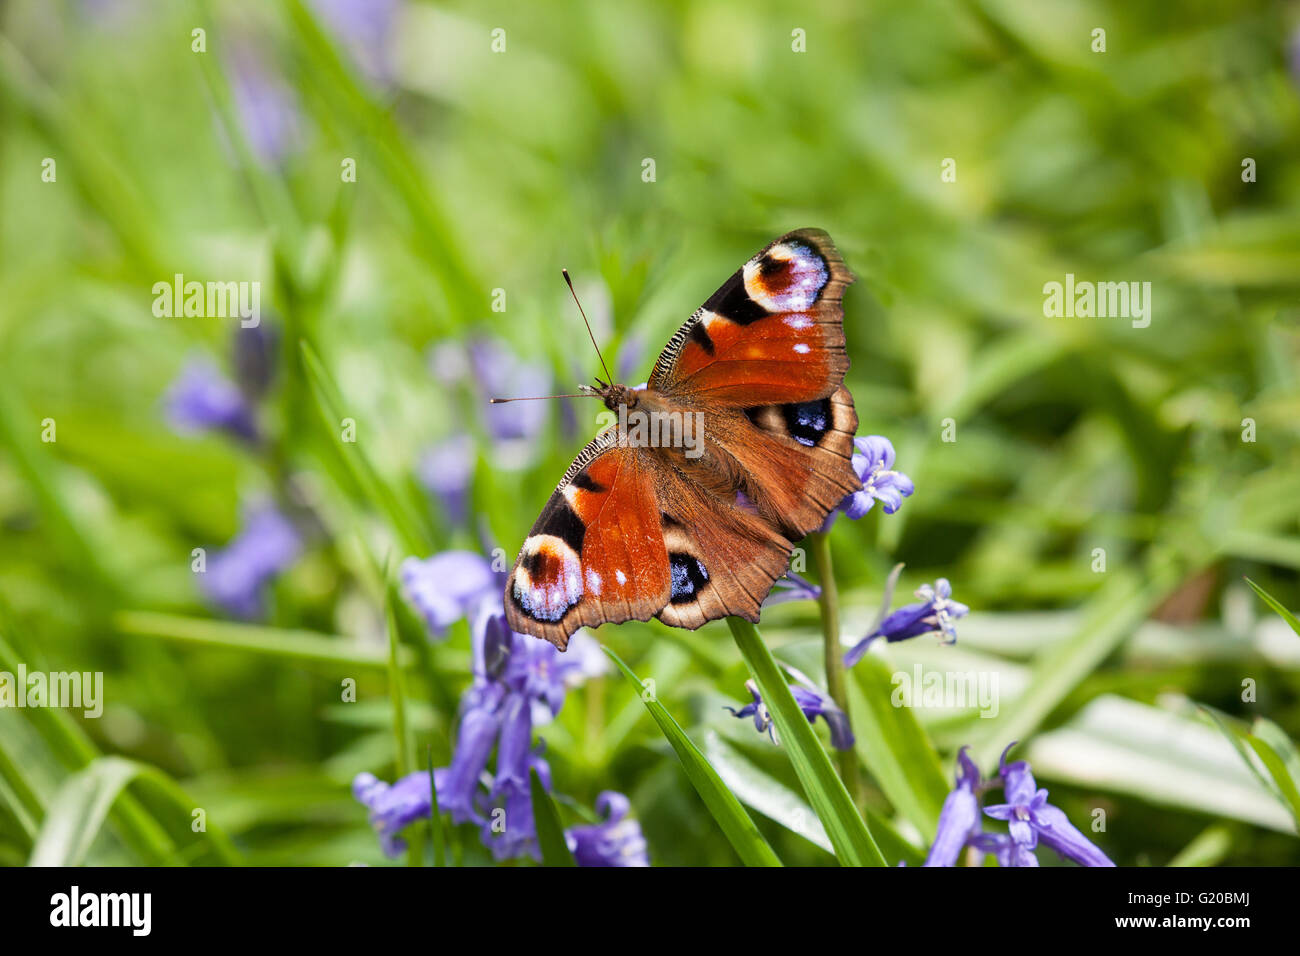 Peacock butterfly Aglais io on bluebell flowers in springtime in the English countryside - Stock Image